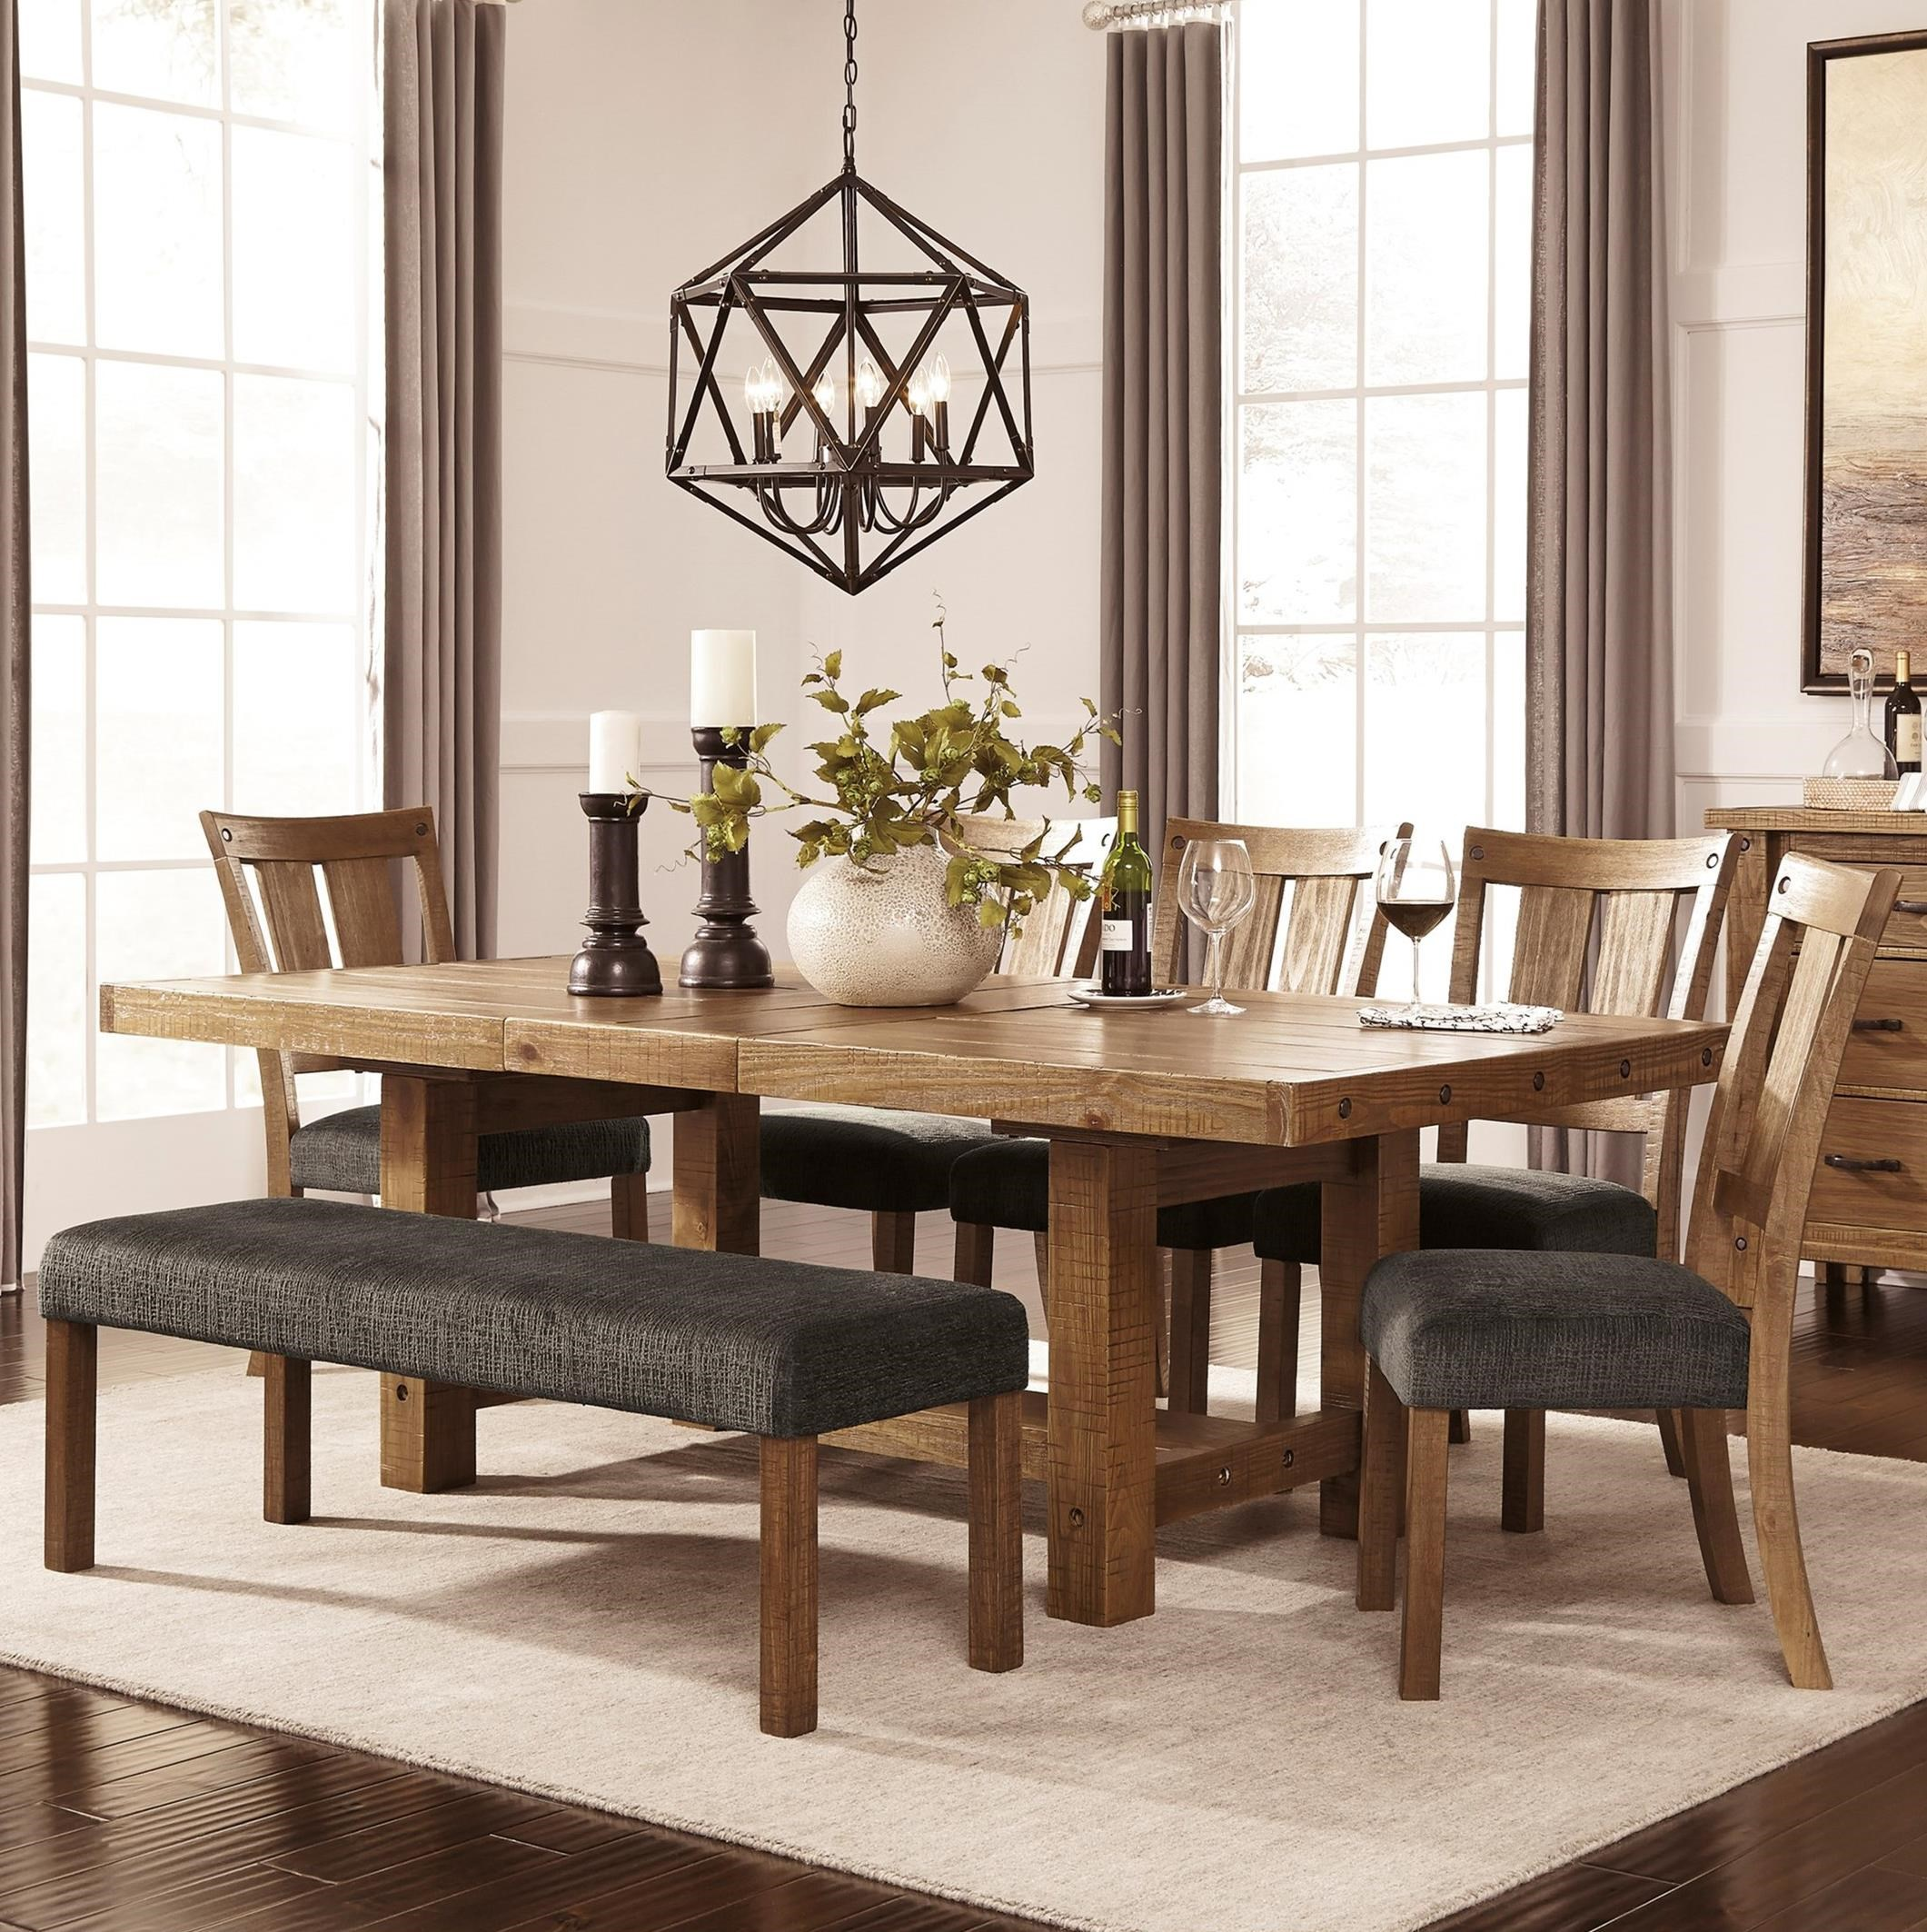 7 Piece Table & Chair Set With Bench By Signature Design